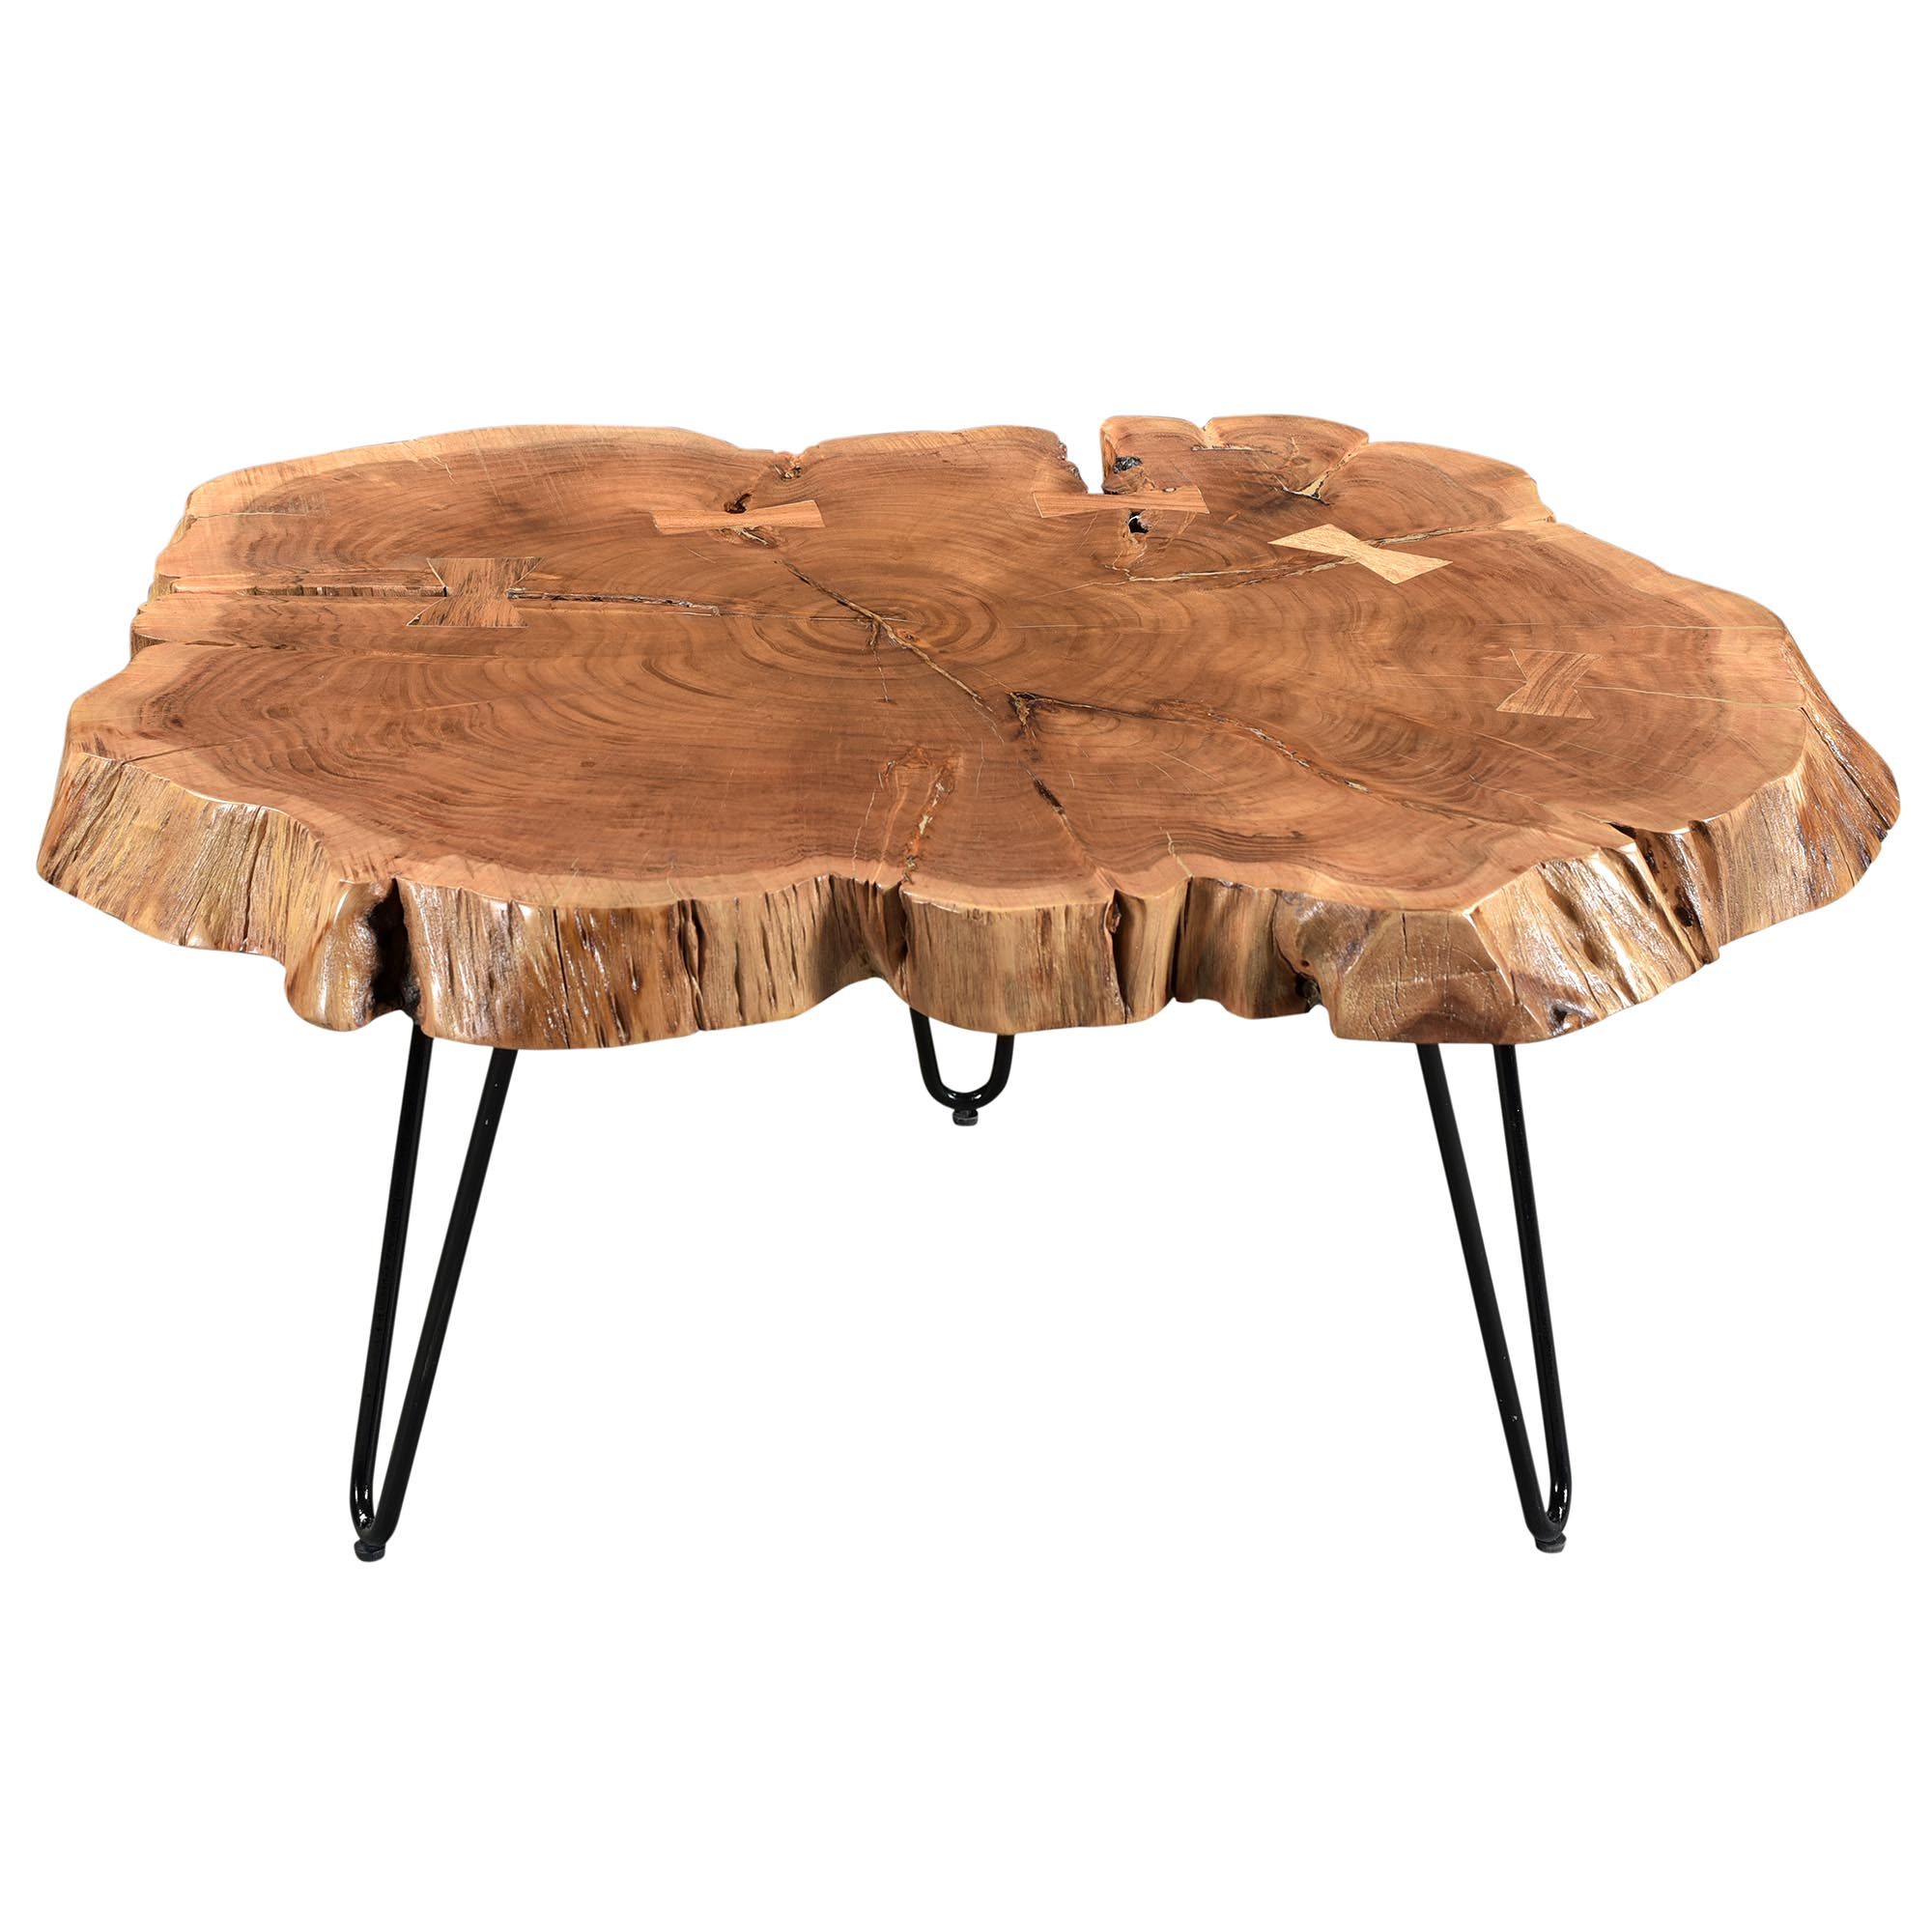 Rustic Modern Solid Wood & Iron Coffee Table in Natural